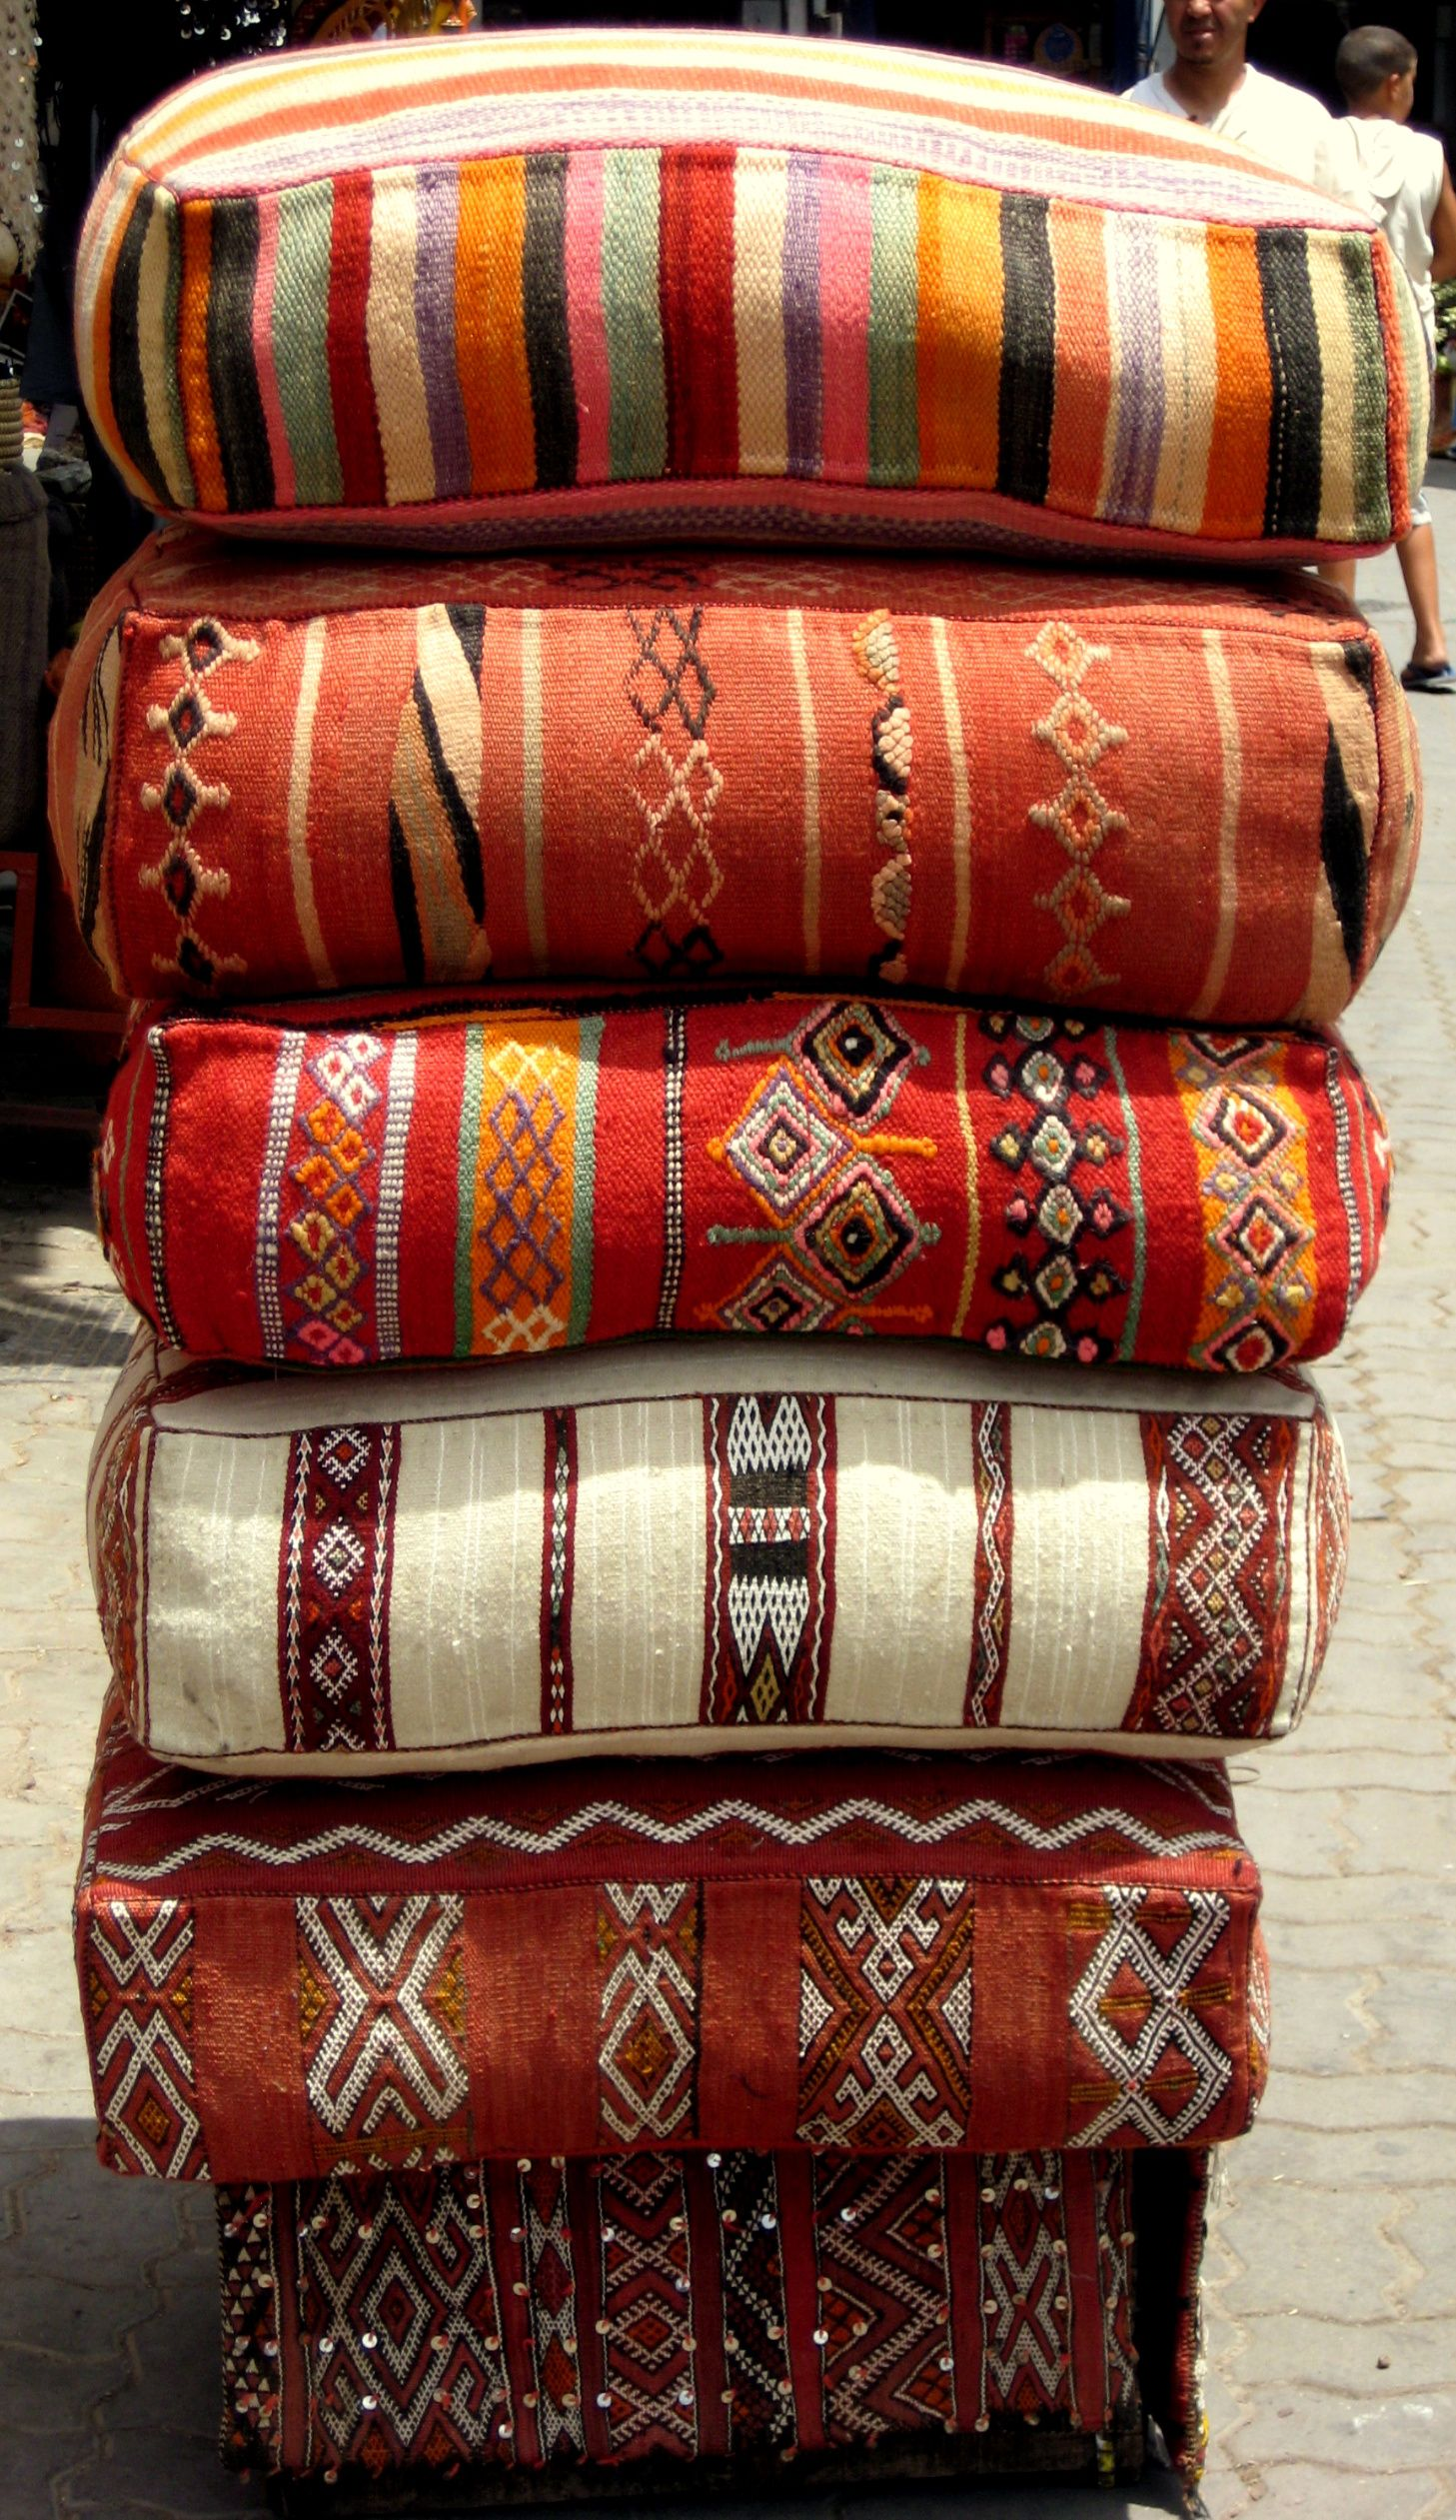 Cuscini Arabi.Moroccan Pillows Love The Stripes In The Top Pillow